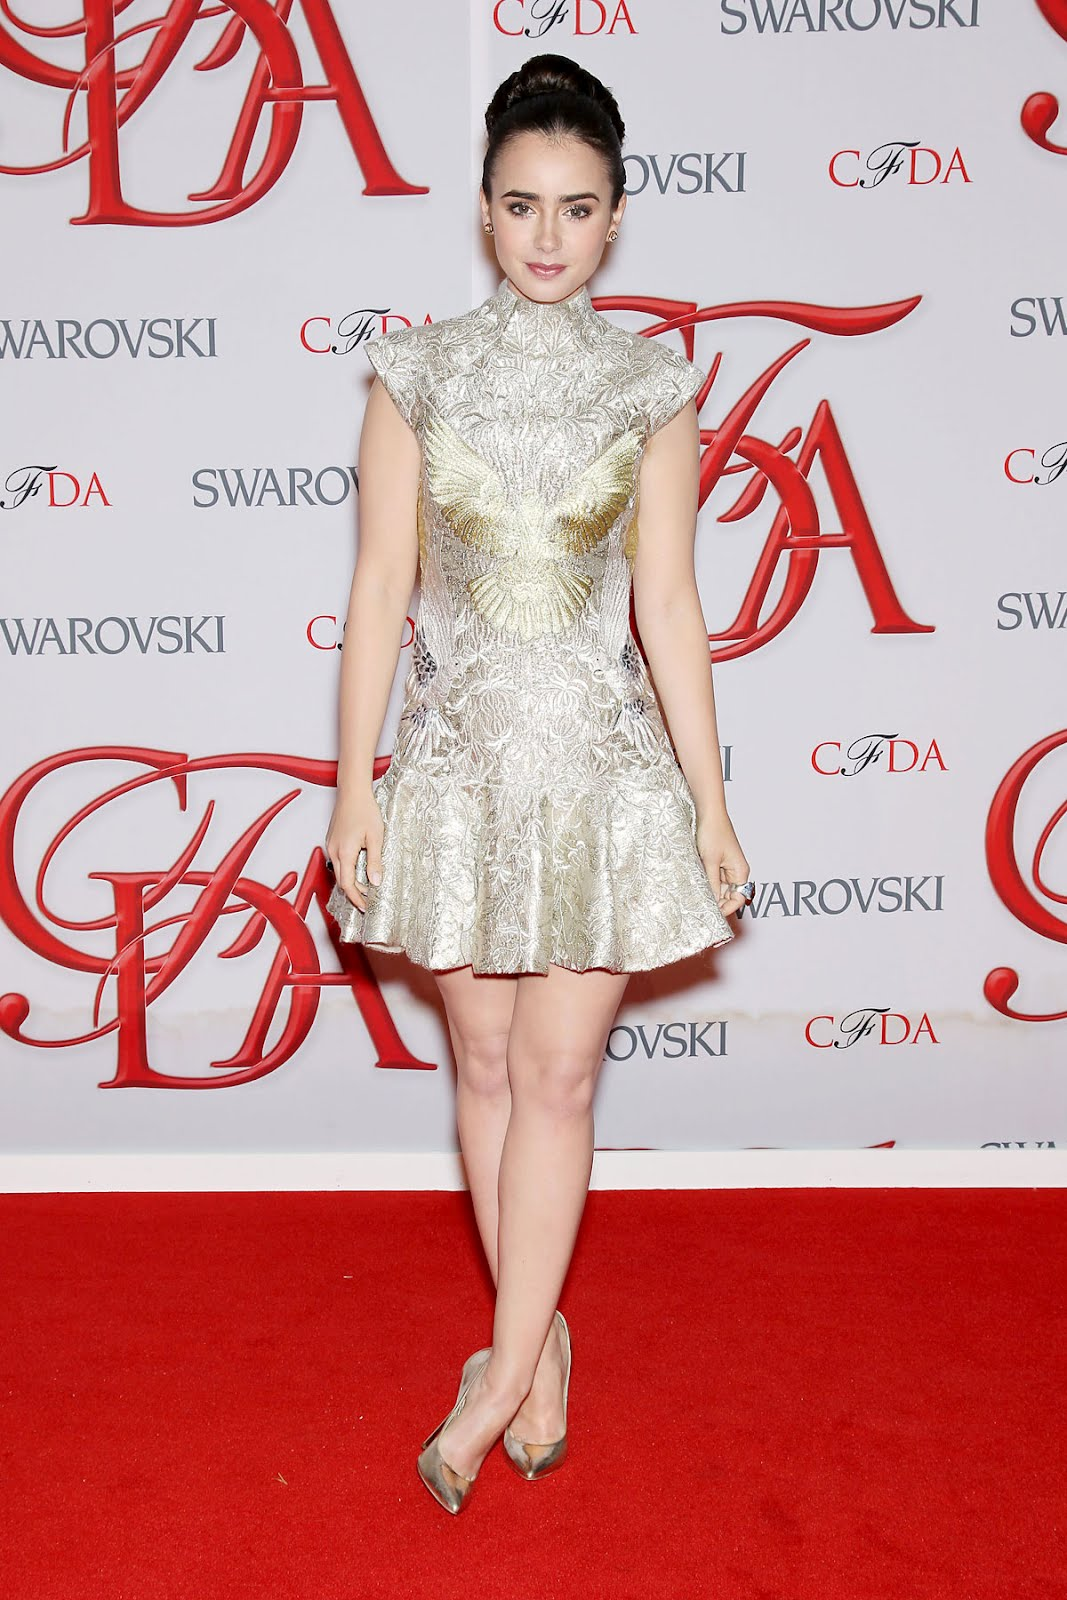 http://1.bp.blogspot.com/-8uCzbsxxrIY/T9IeXEhAtnI/AAAAAAAAG3M/FswCi3hcNNQ/s1600/LILY-COLLINS-at-2012-CFDA-Fashion-Awards-in-New-York-6.jpg